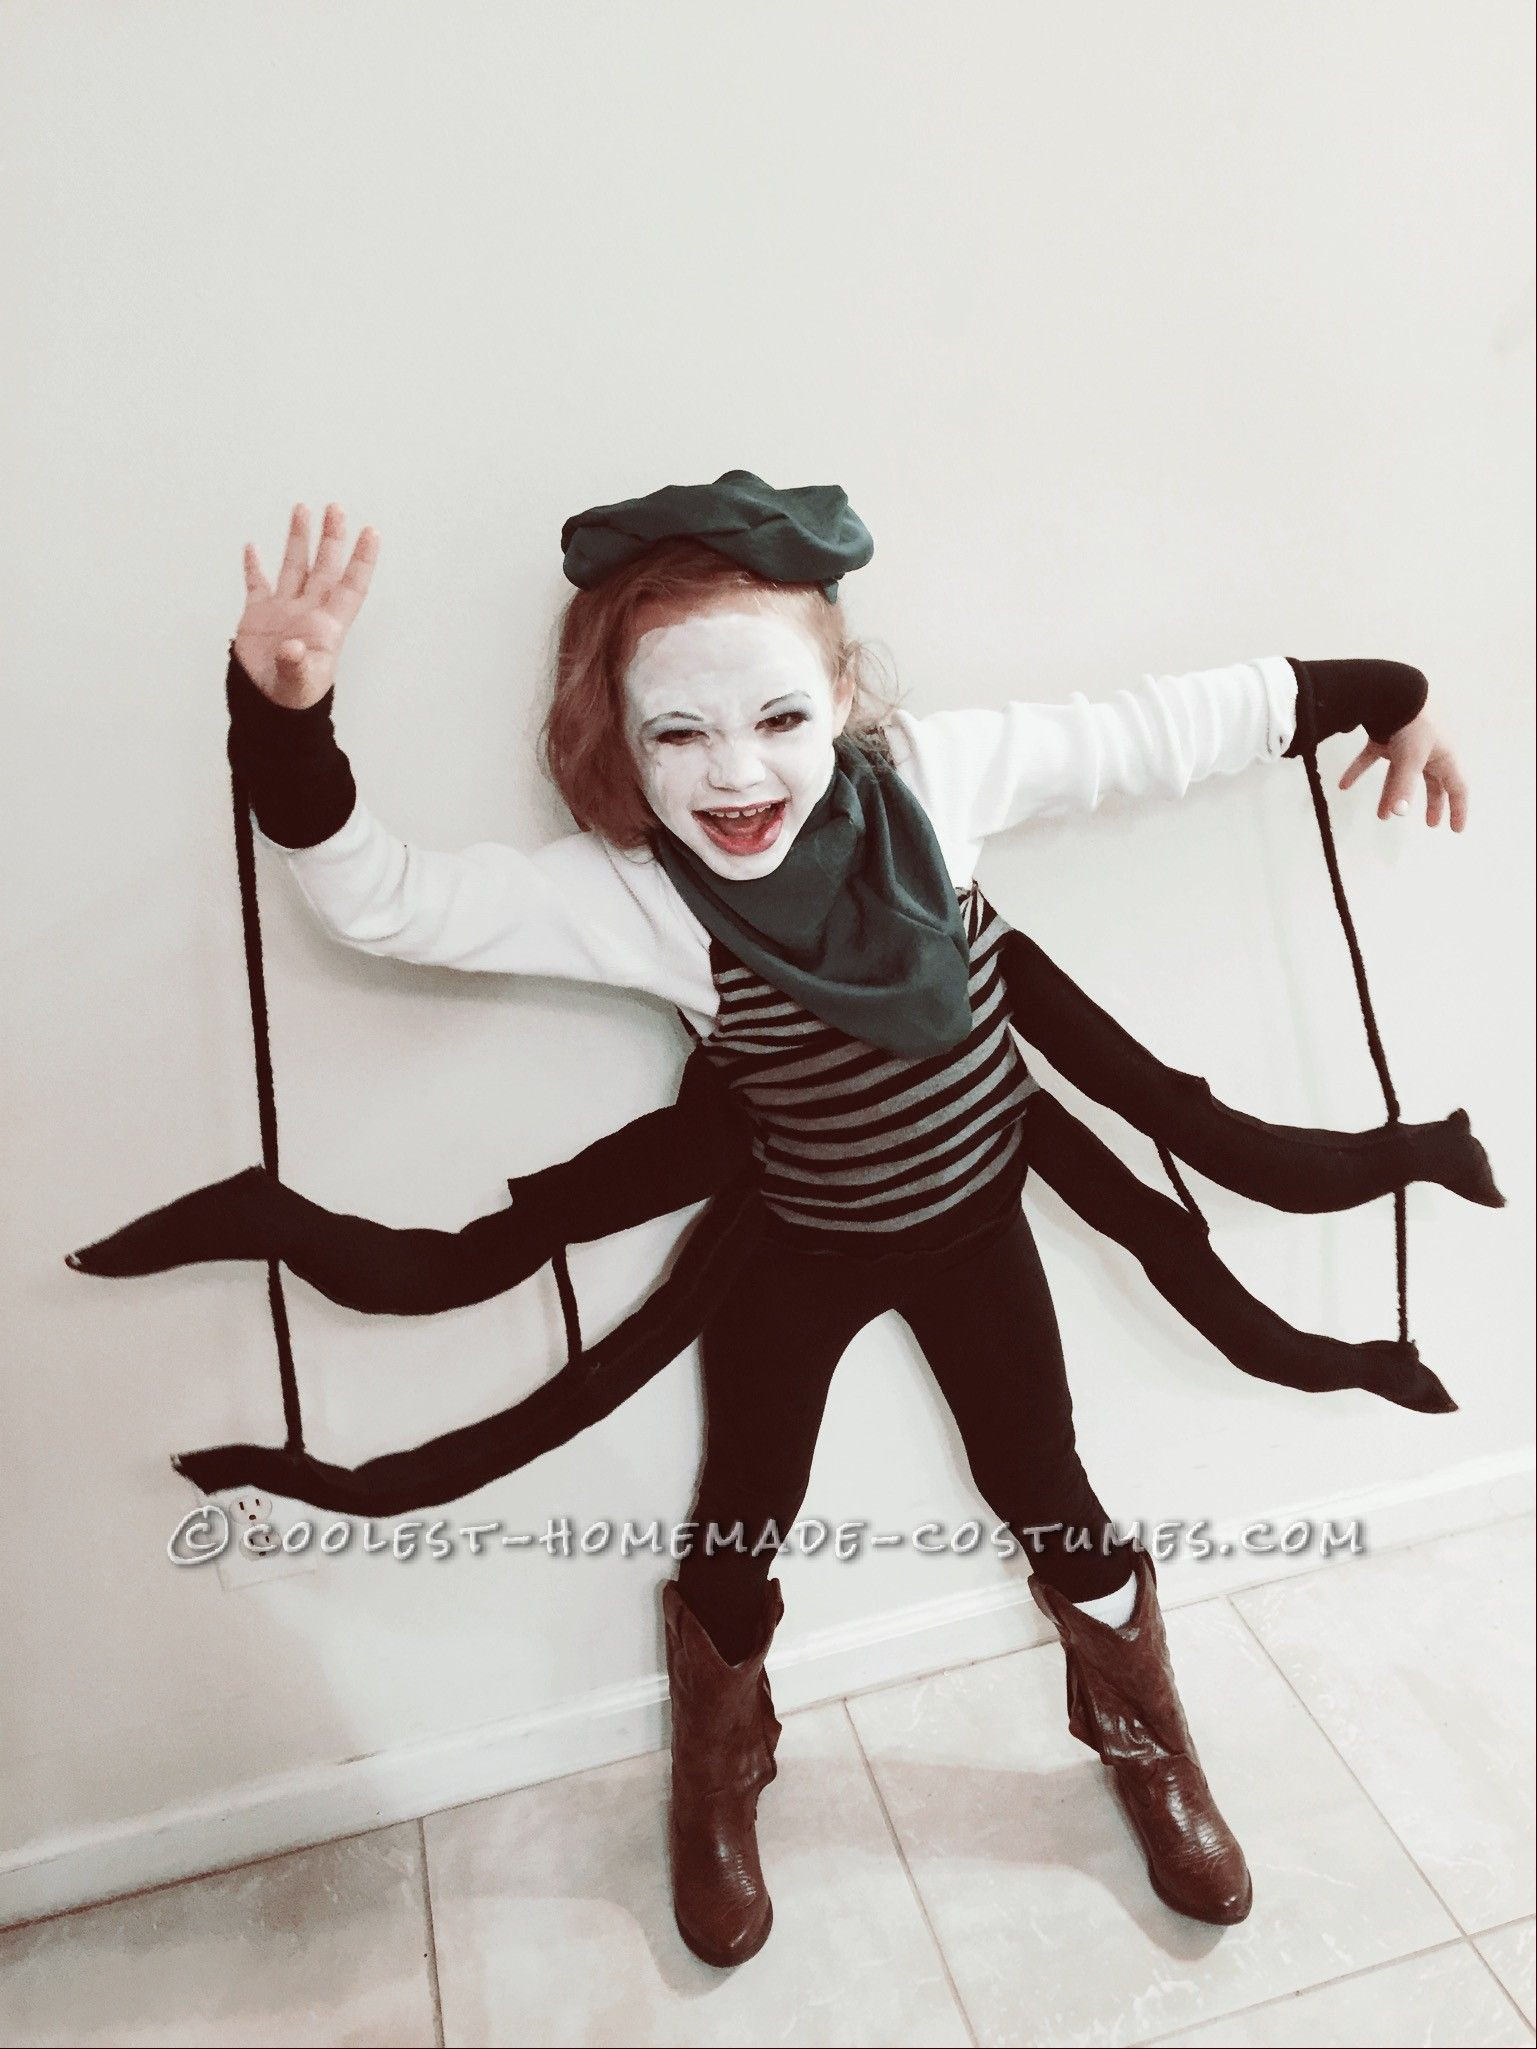 Coolest Spider Costume for a Girl | Spider costume, Halloween ...